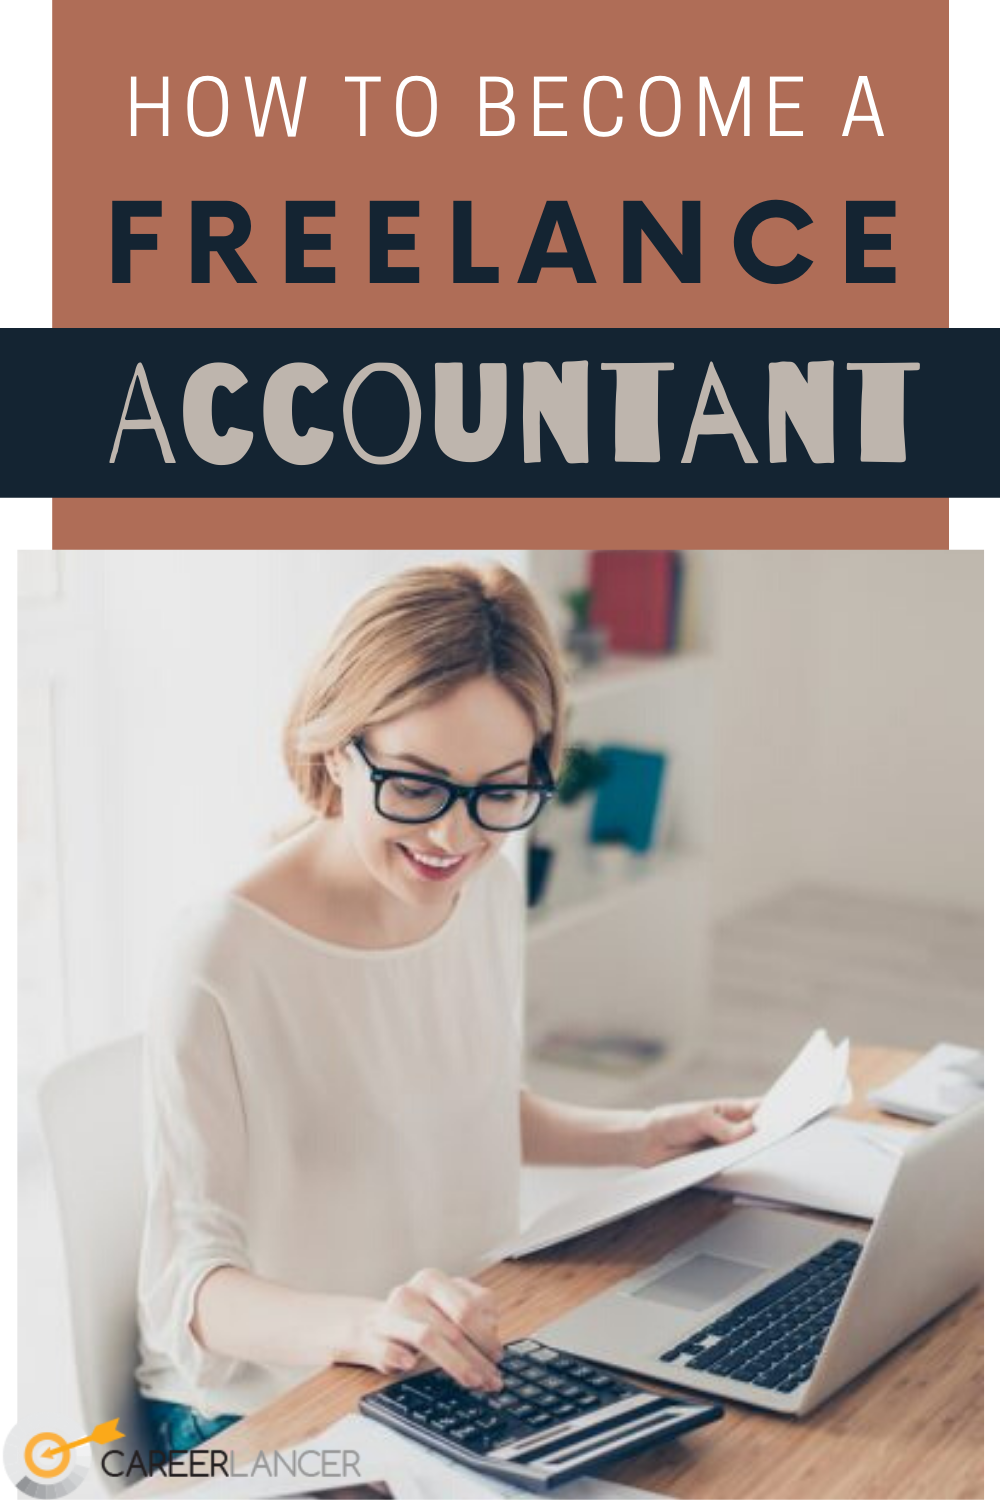 How To Become A Freelance Accountant Careerlancer Accounting Career Accounting Bookkeeping Business